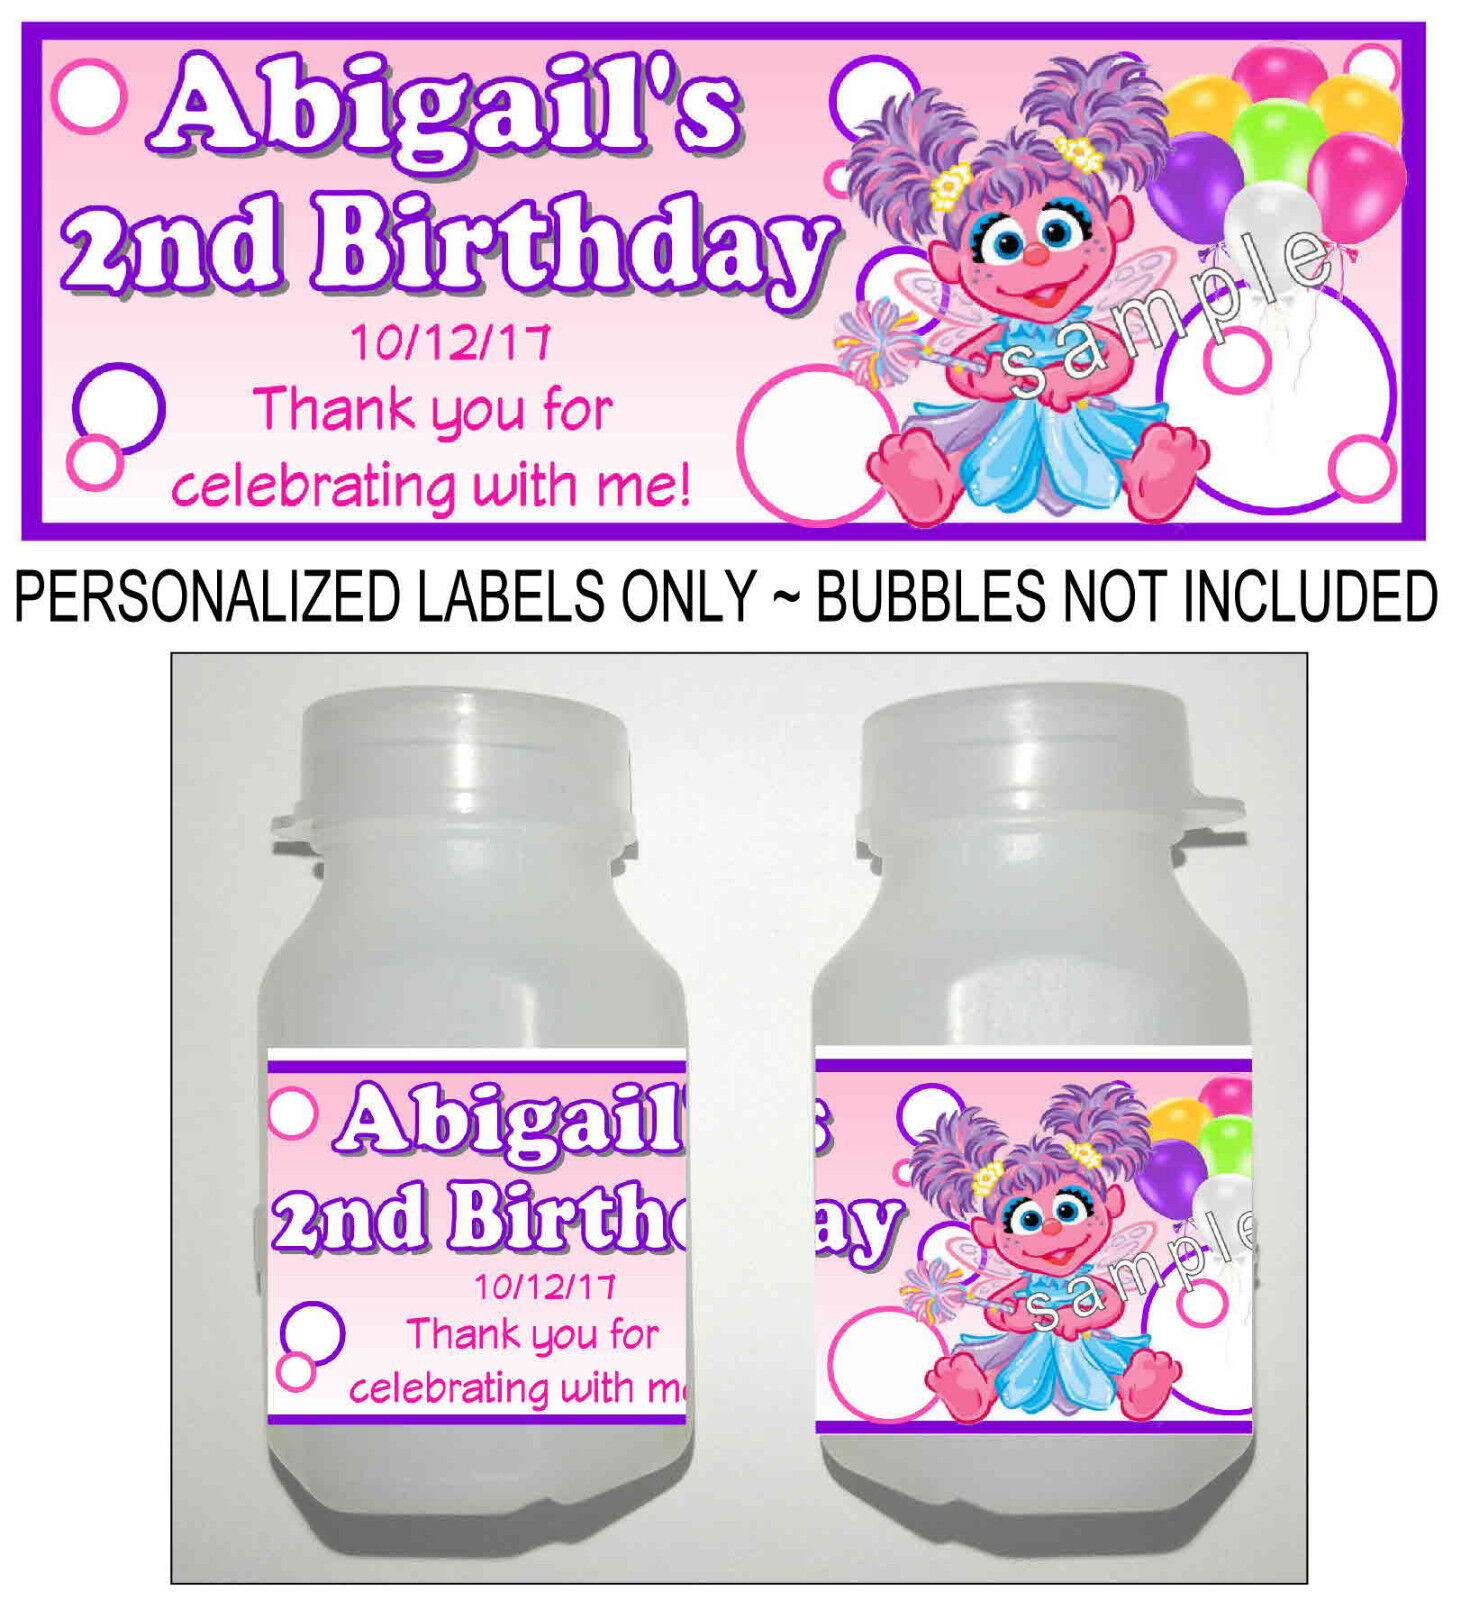 ABBY CADABBY CAPRI SUN LABELS BIRTHDAY PARTY FAVORS Suns JUICE STICKERS SUPPLIES